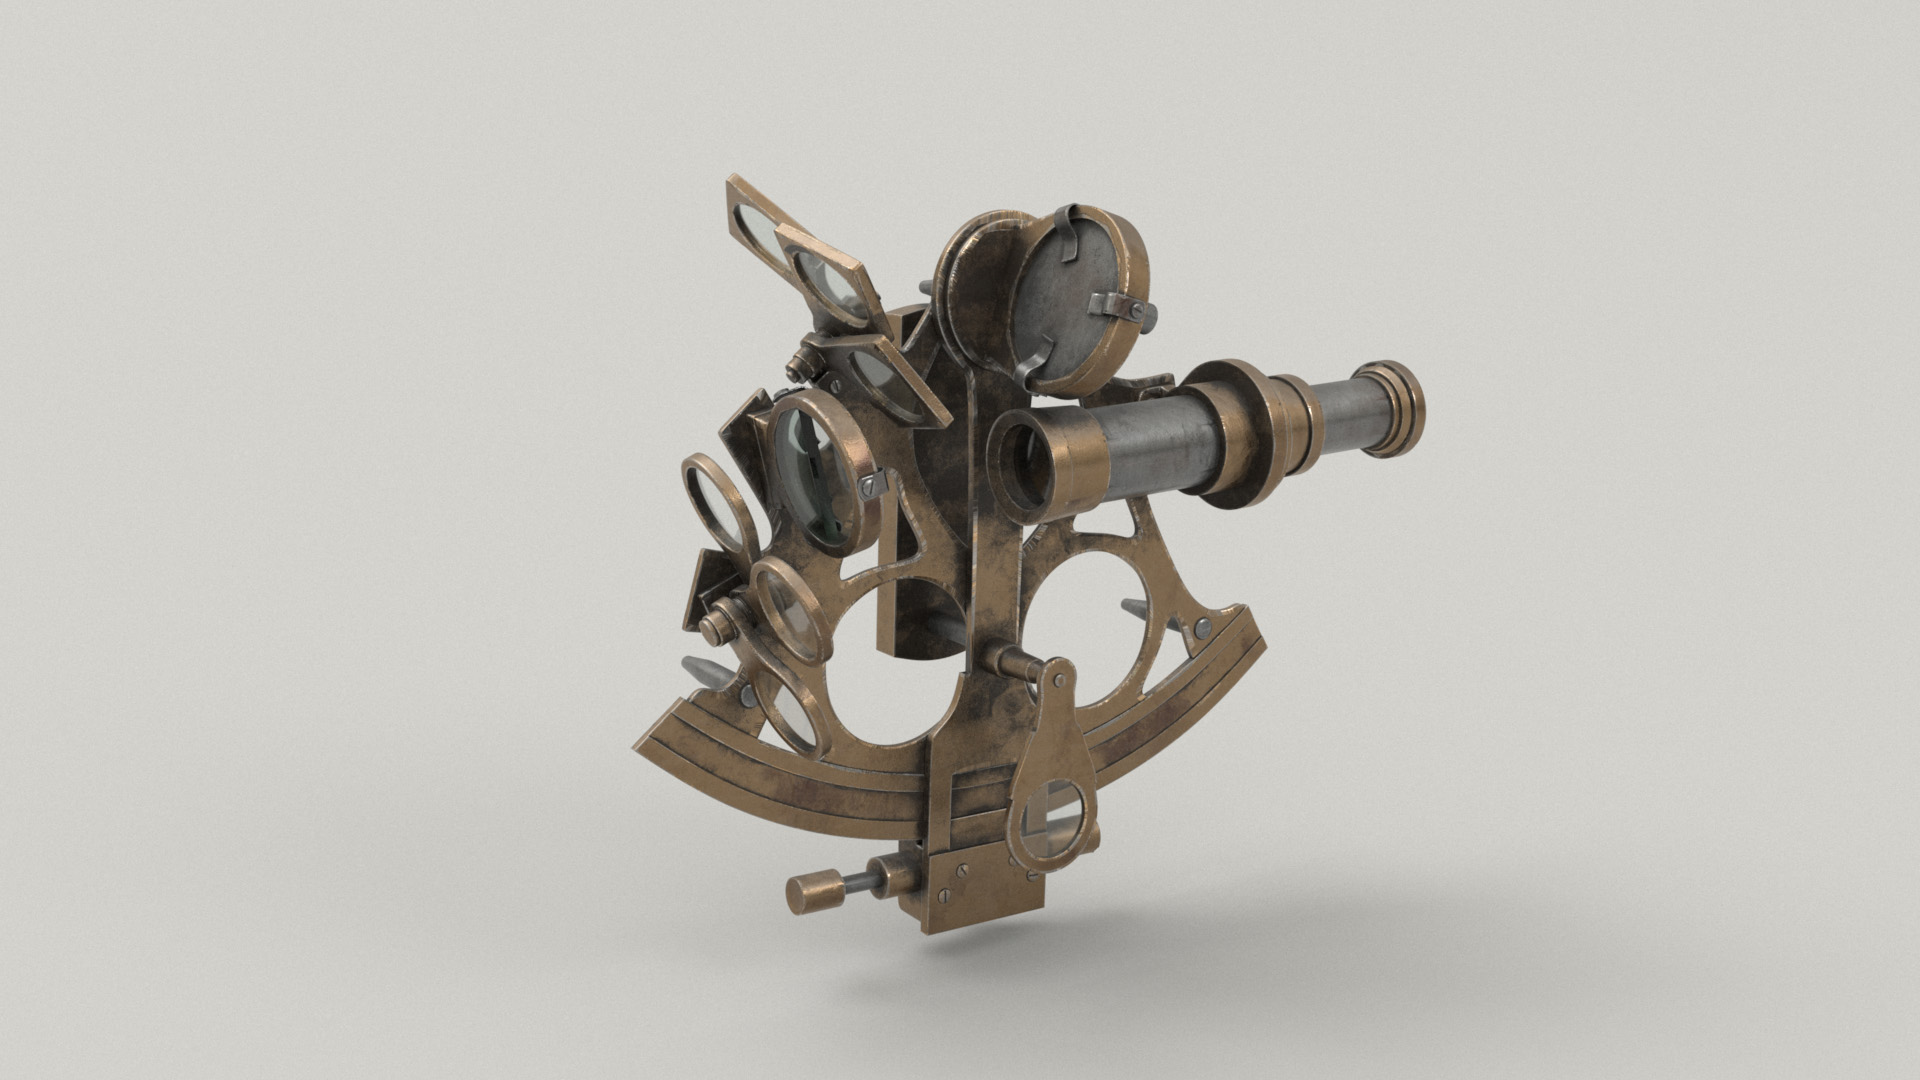 Figure 37: Quick n' dirty lookdev test of the sextant. Model is by Aliyah Chen and was provided by Pixar as one of the contest's base models.